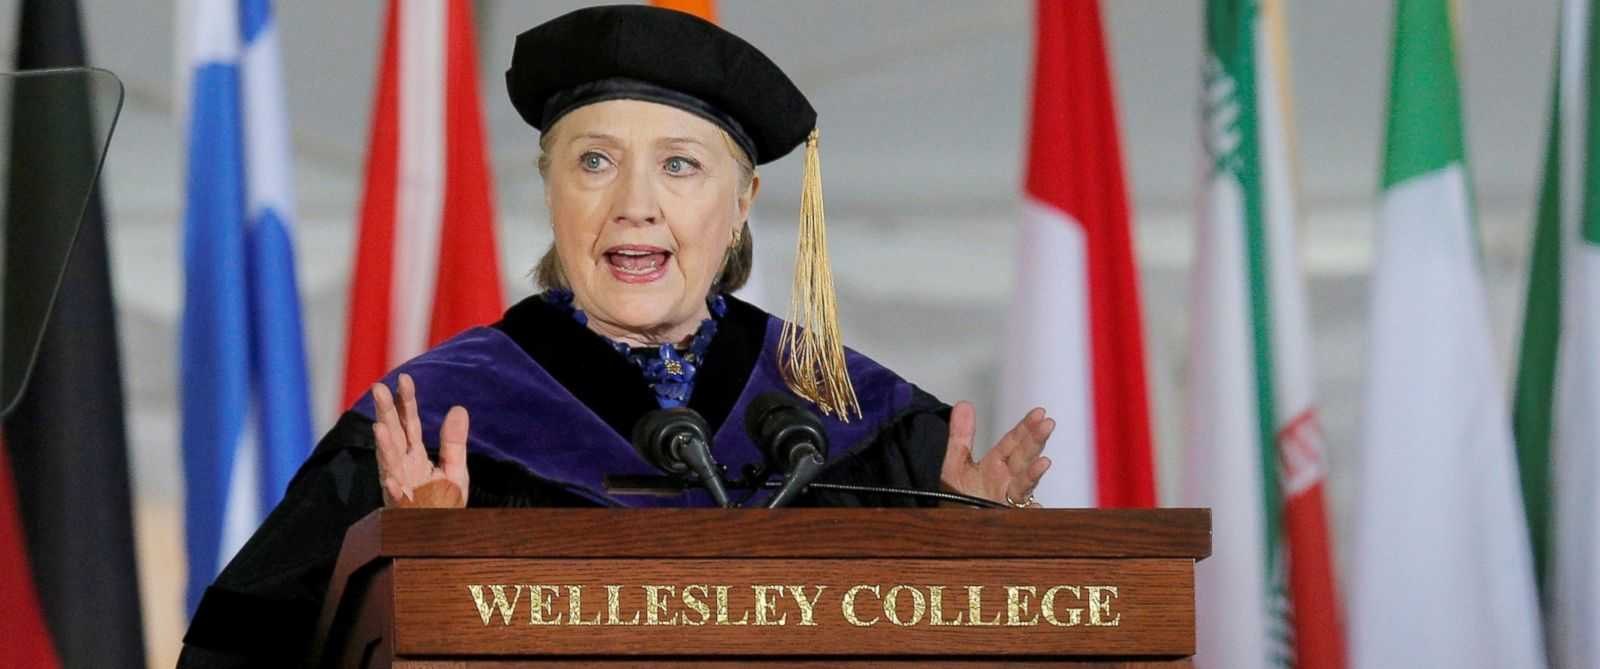 Hillary Clinton Calls Out Donald Trump In Wellesley College Speech | clinton